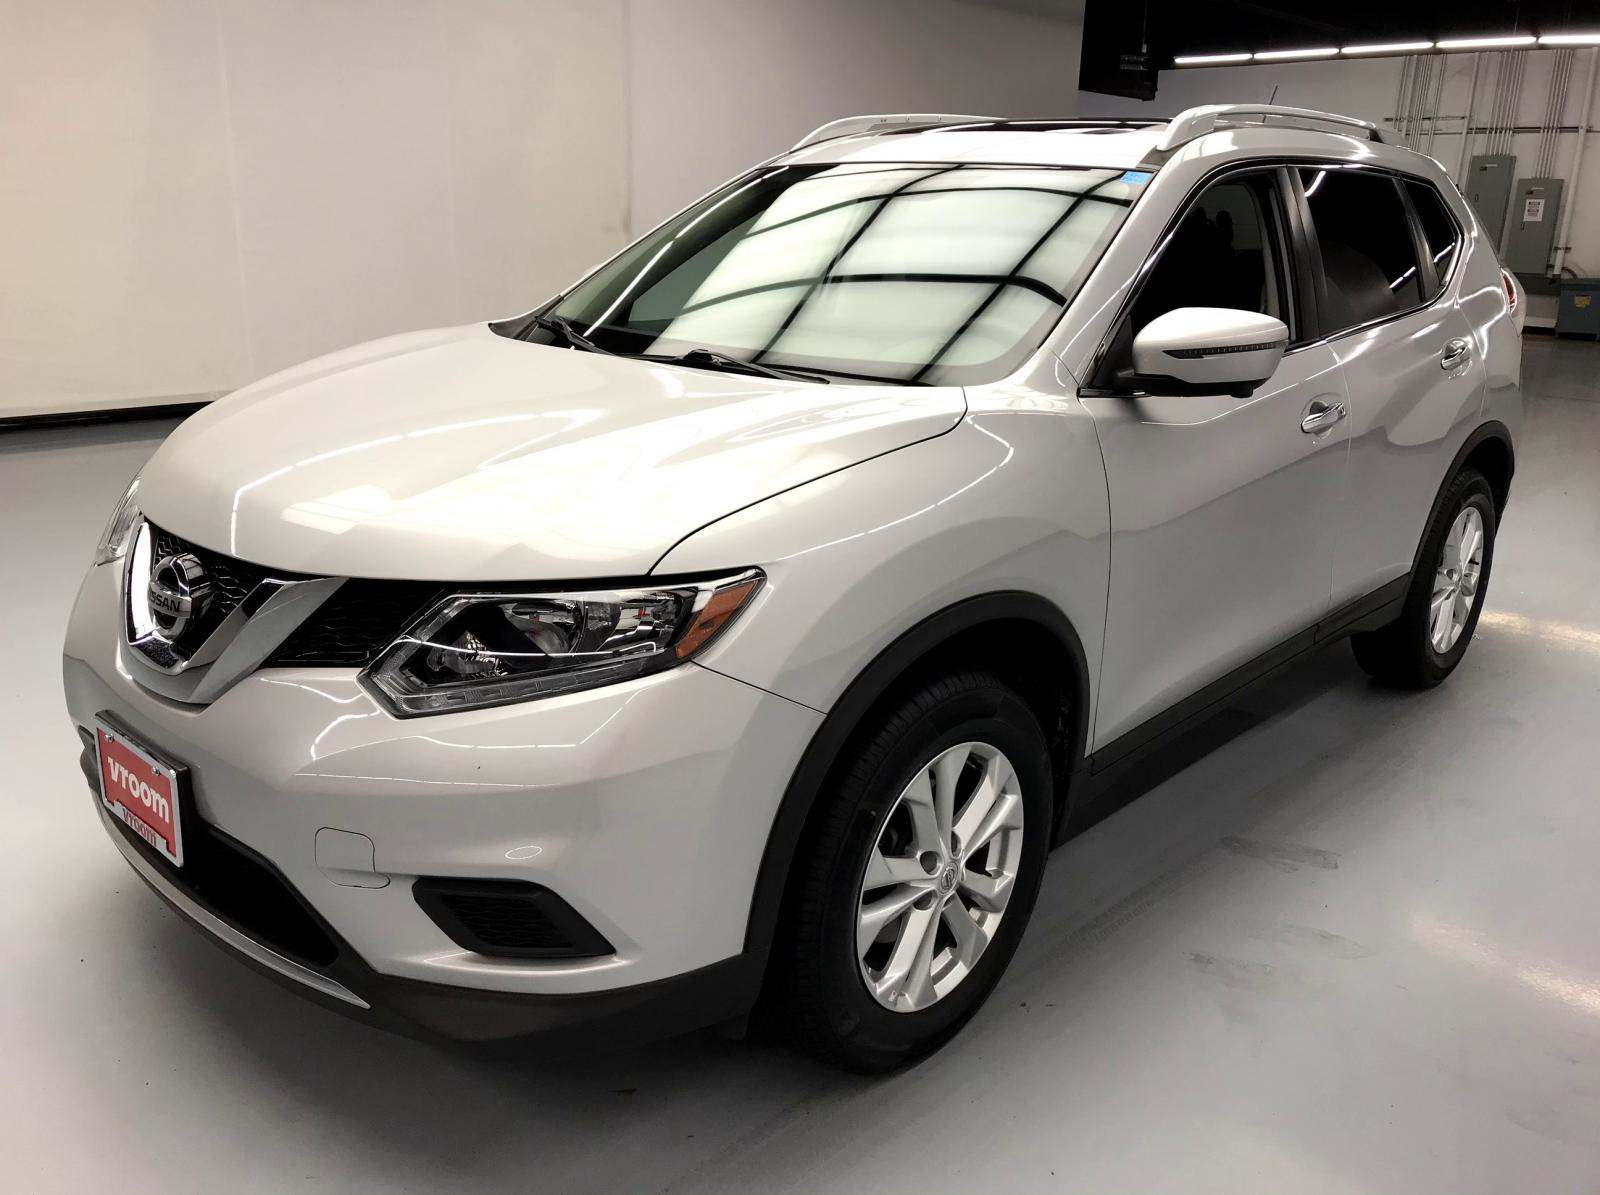 2016 Nissan Rogue For Sale >> Used 2016 Nissan Rogue For Sale 17 920 Vroom